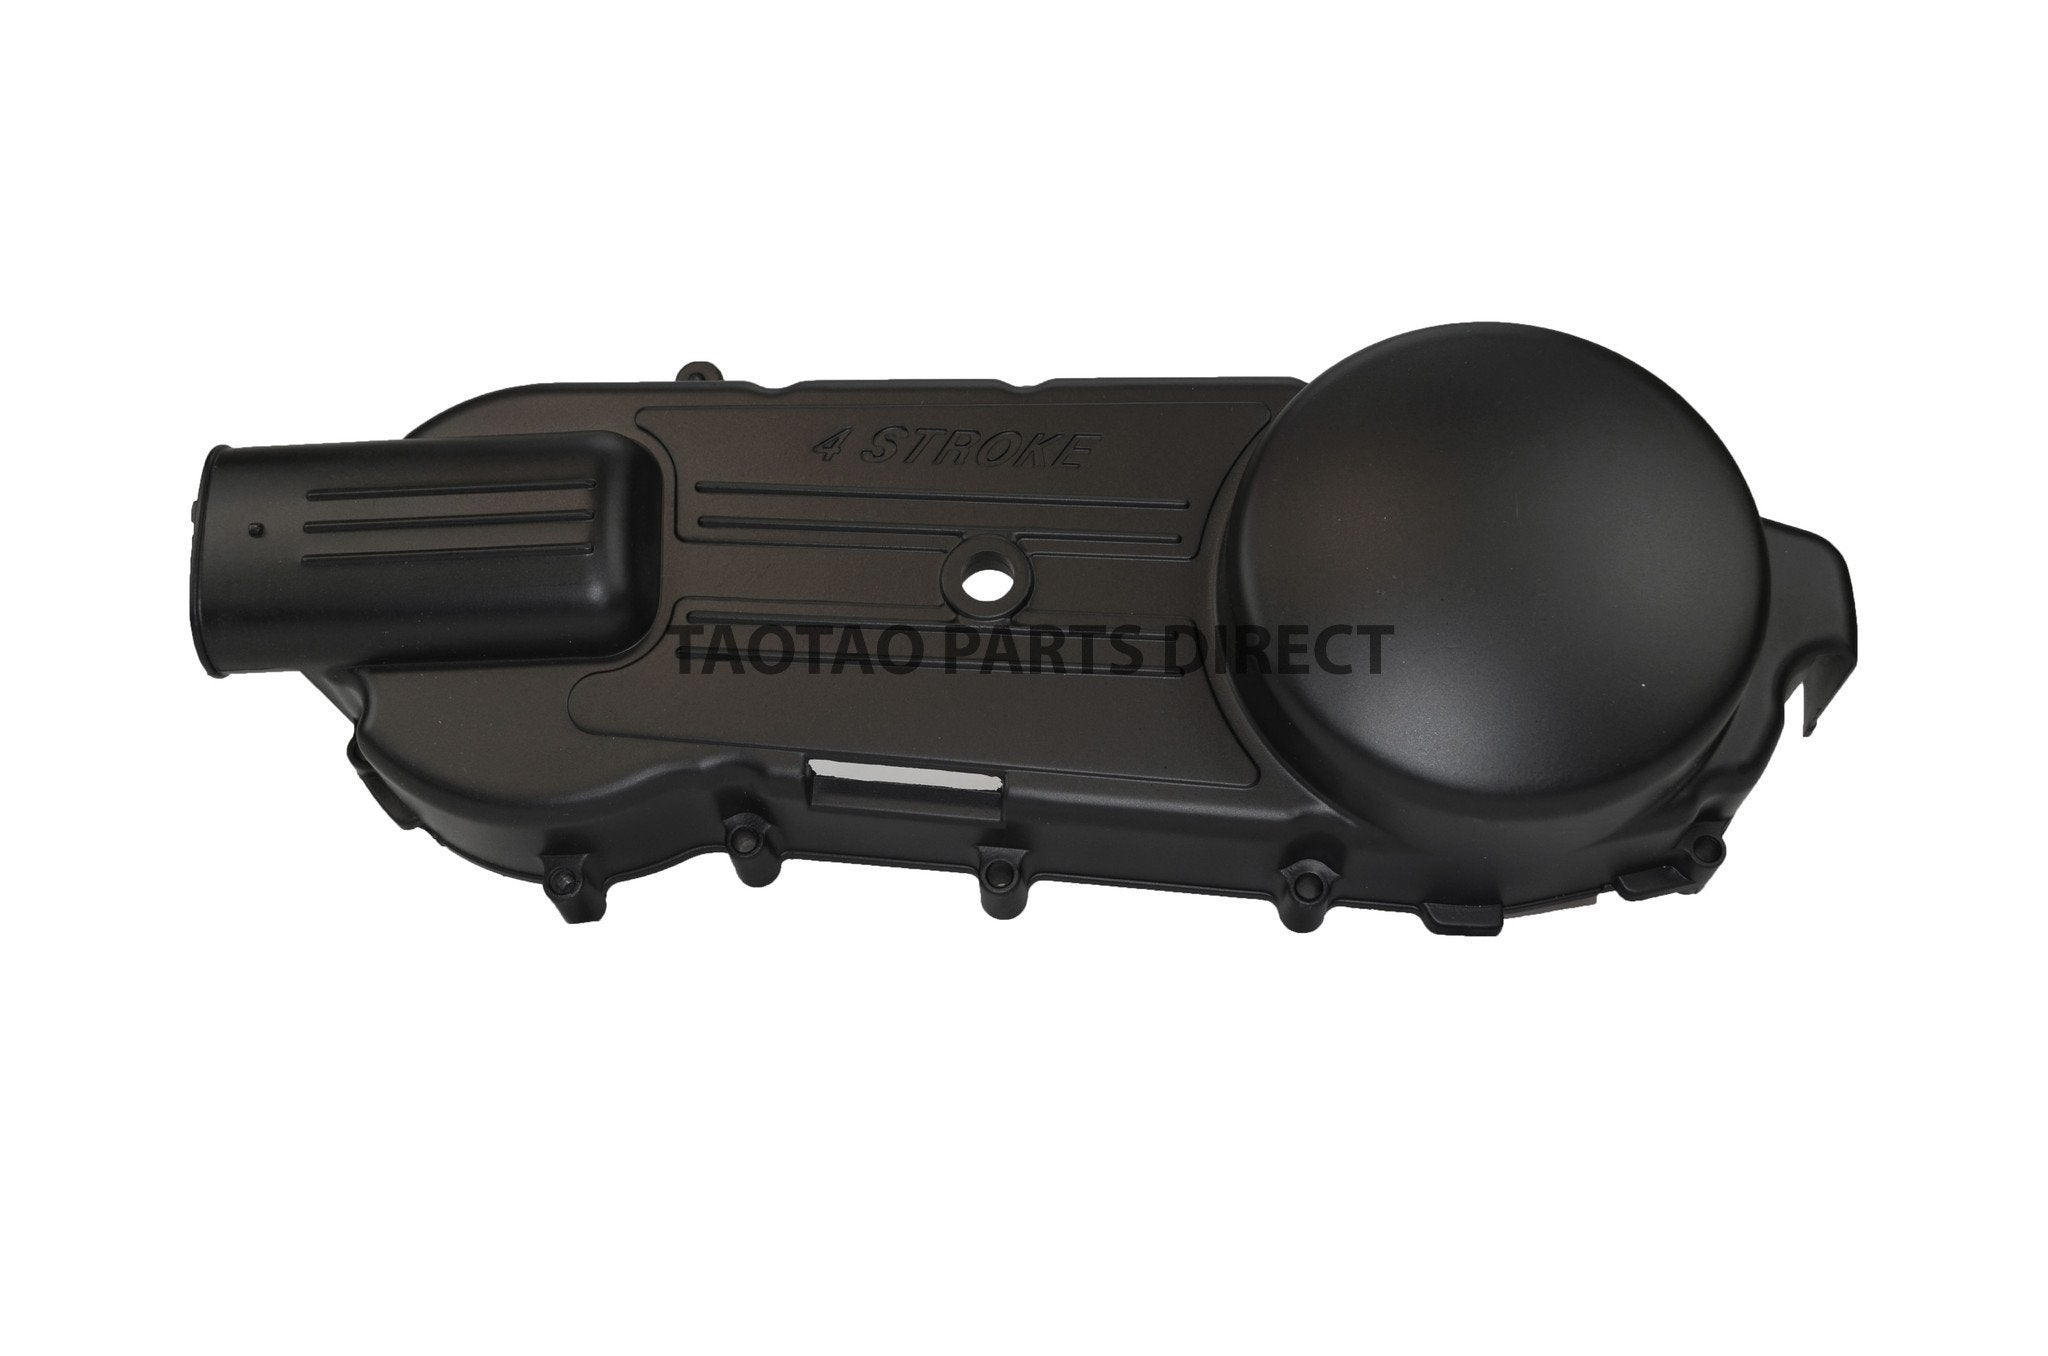 150cc CVT Cover - TaoTao Parts Direct